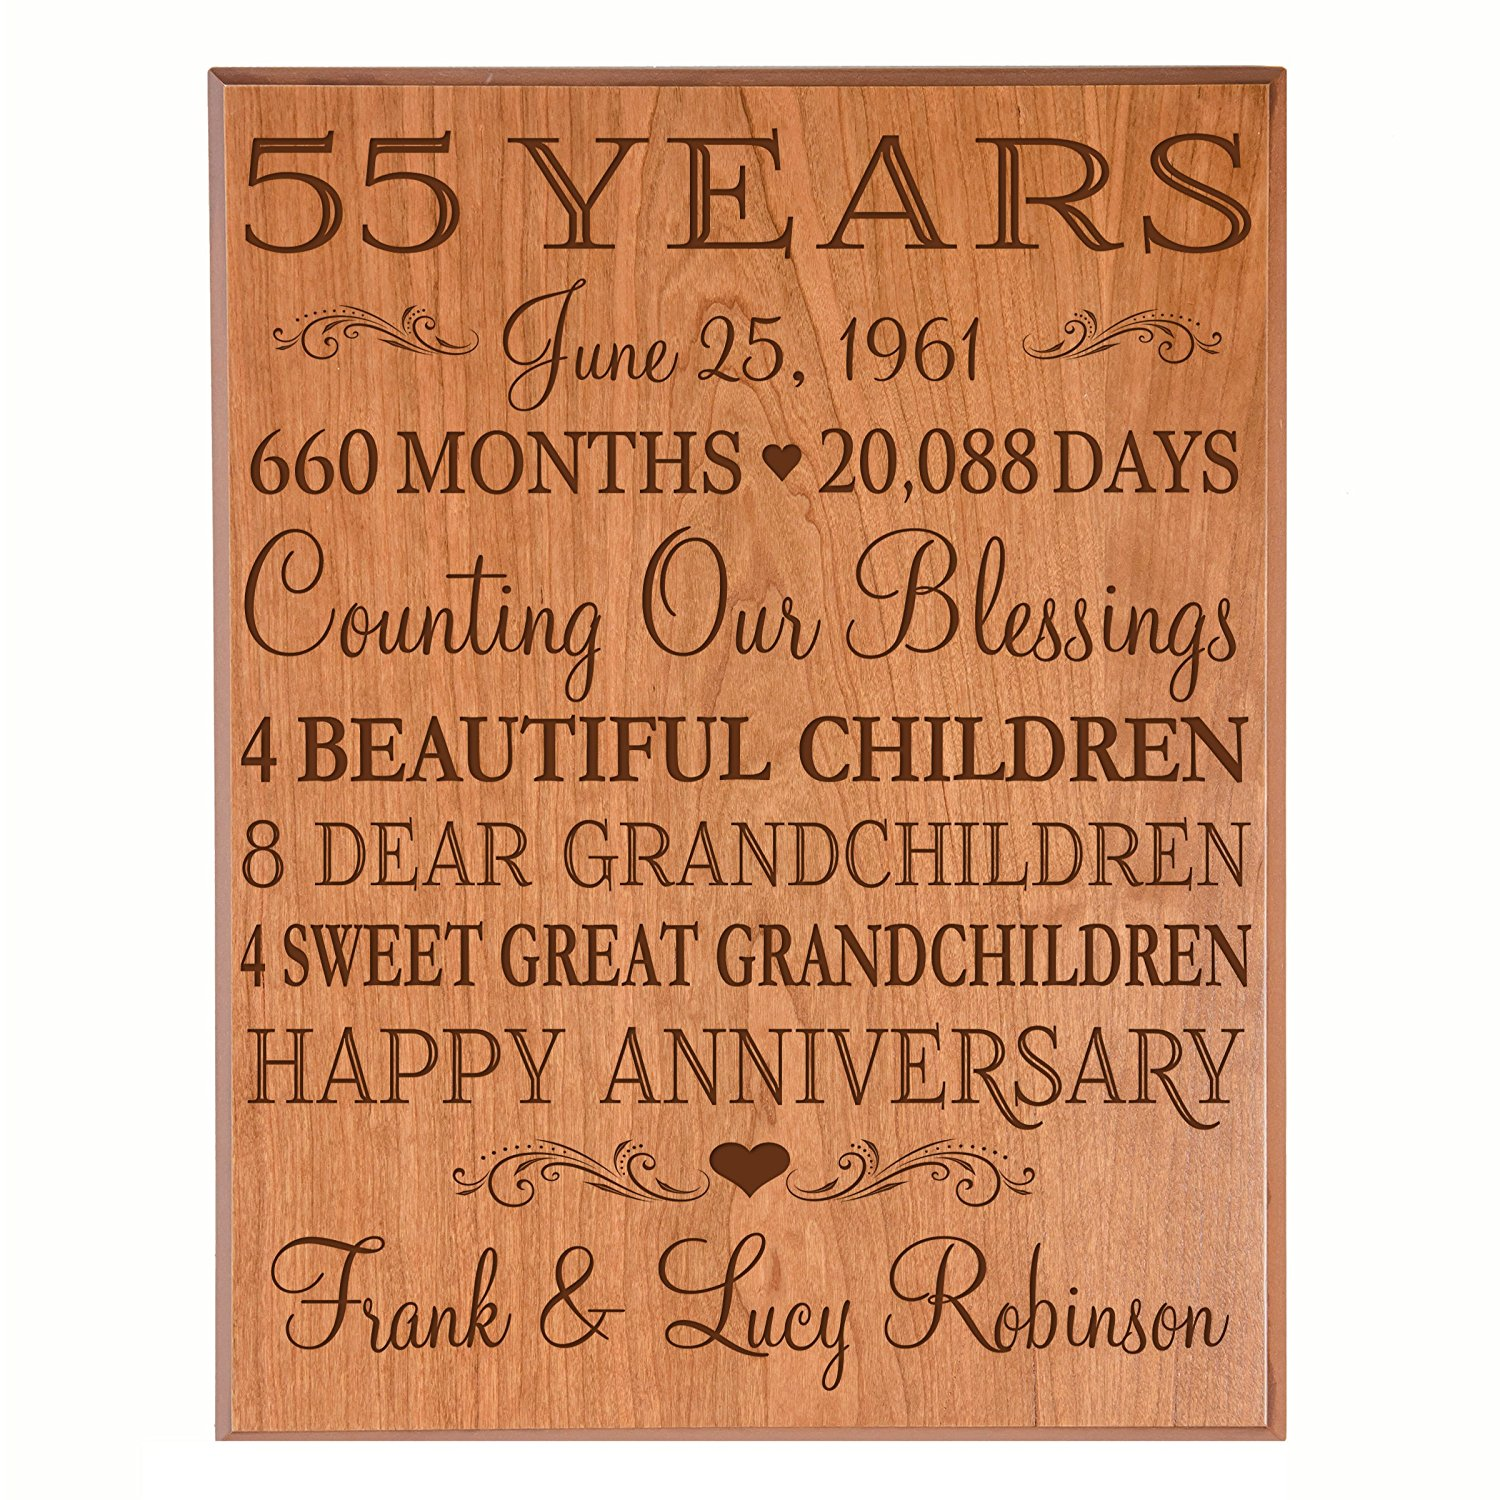 """Personalized 55th Anniversary Gifts for him her Couple parents, Custom Made 55 year Anniversary Gifts ideas Wall Plaque 12"""" x 15"""" By Dayspring Milestones (Cherry Veneer Wood)"""